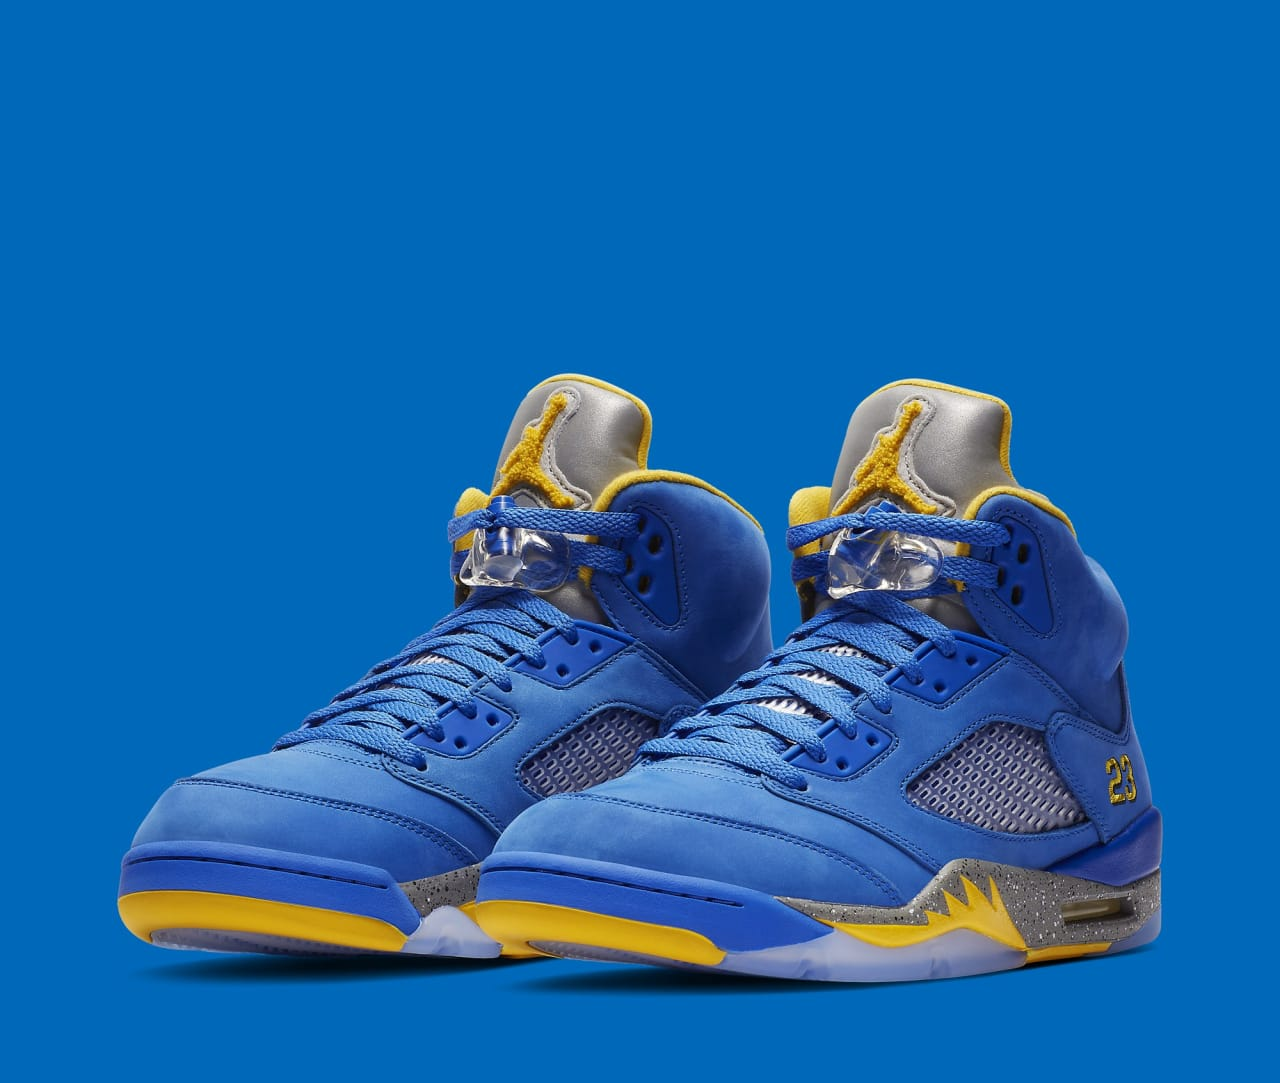 ab2e69311b9 Release Date for the 2019 'Laney' Air Jordan 5s Has Been Pushed Back